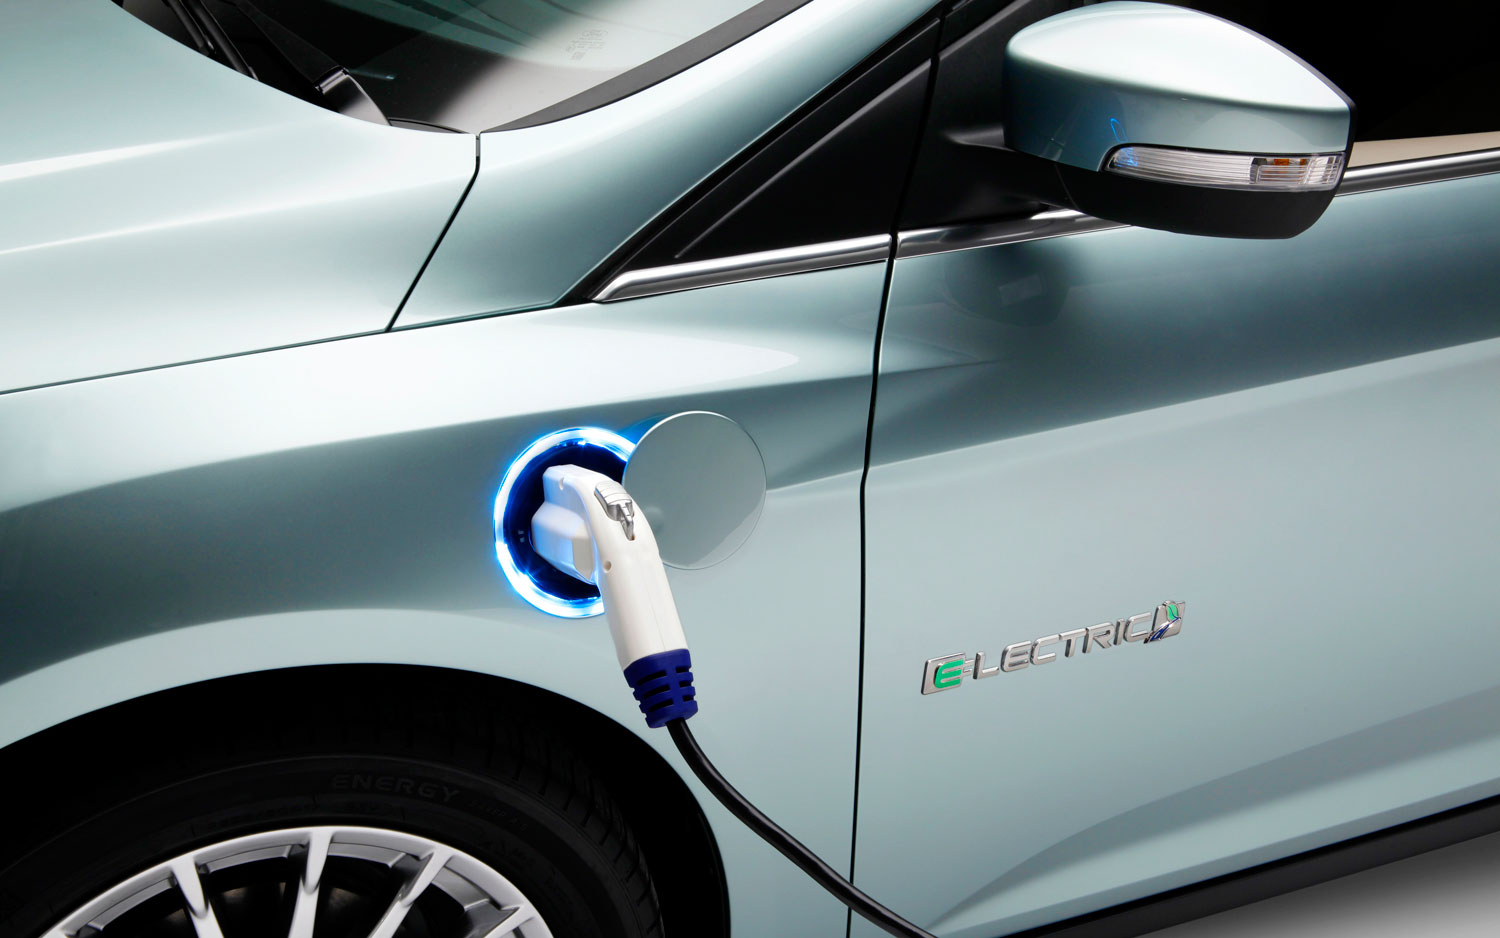 2012 Ford Focus Electric Charging Port1